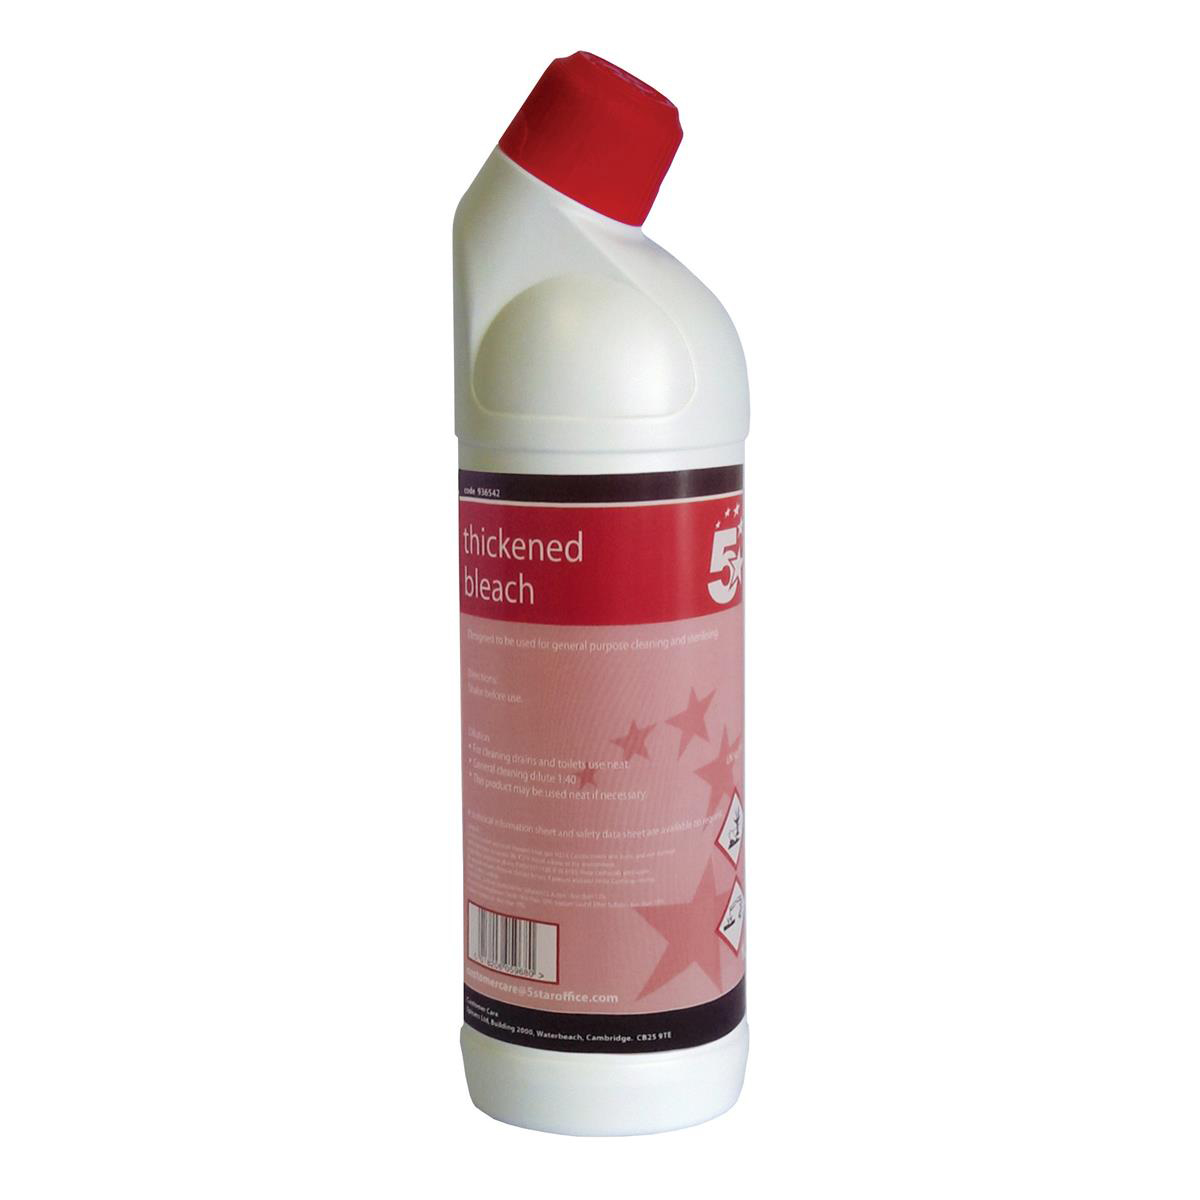 Disinfectant 5 Star Facilities Thickened Bleach General Purpose Cleaner 1 Litre